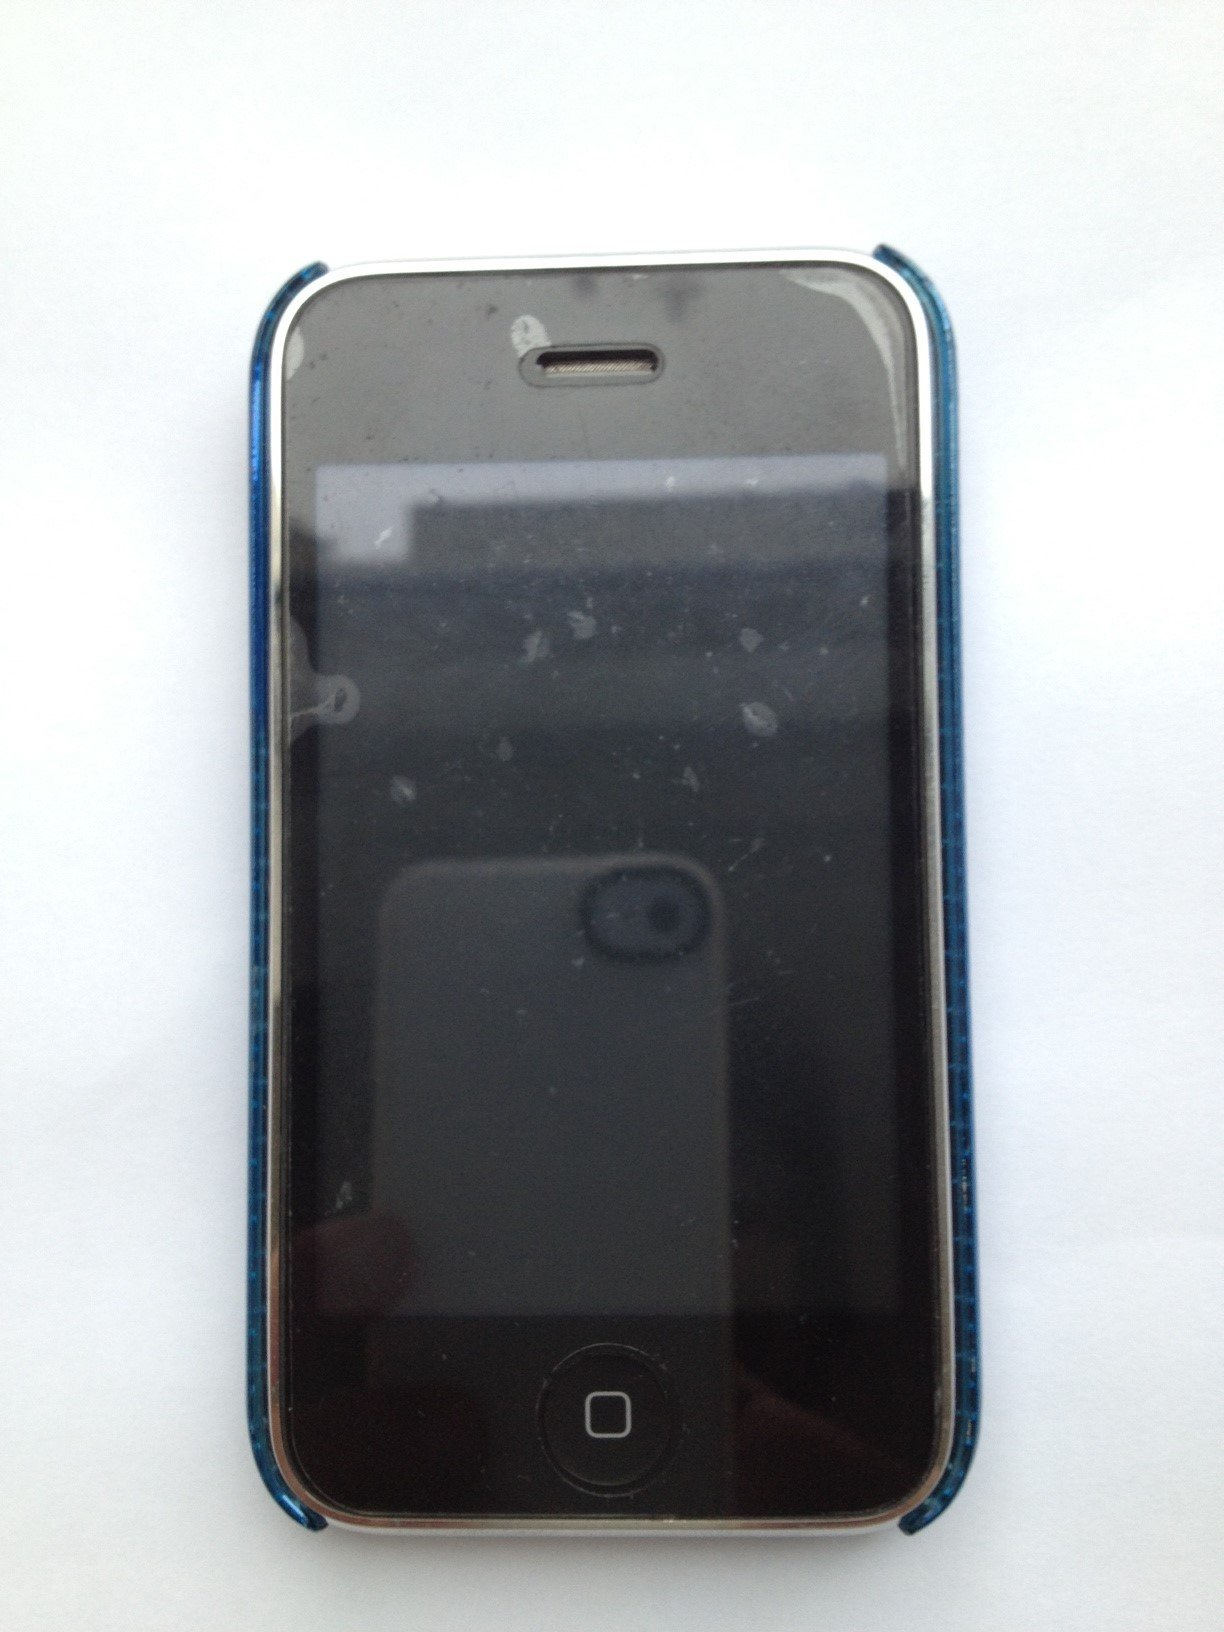 coque iphone 3g lookmyphone 2 - Test : Coque Ventilée Bleue iPhone 3G/3GS